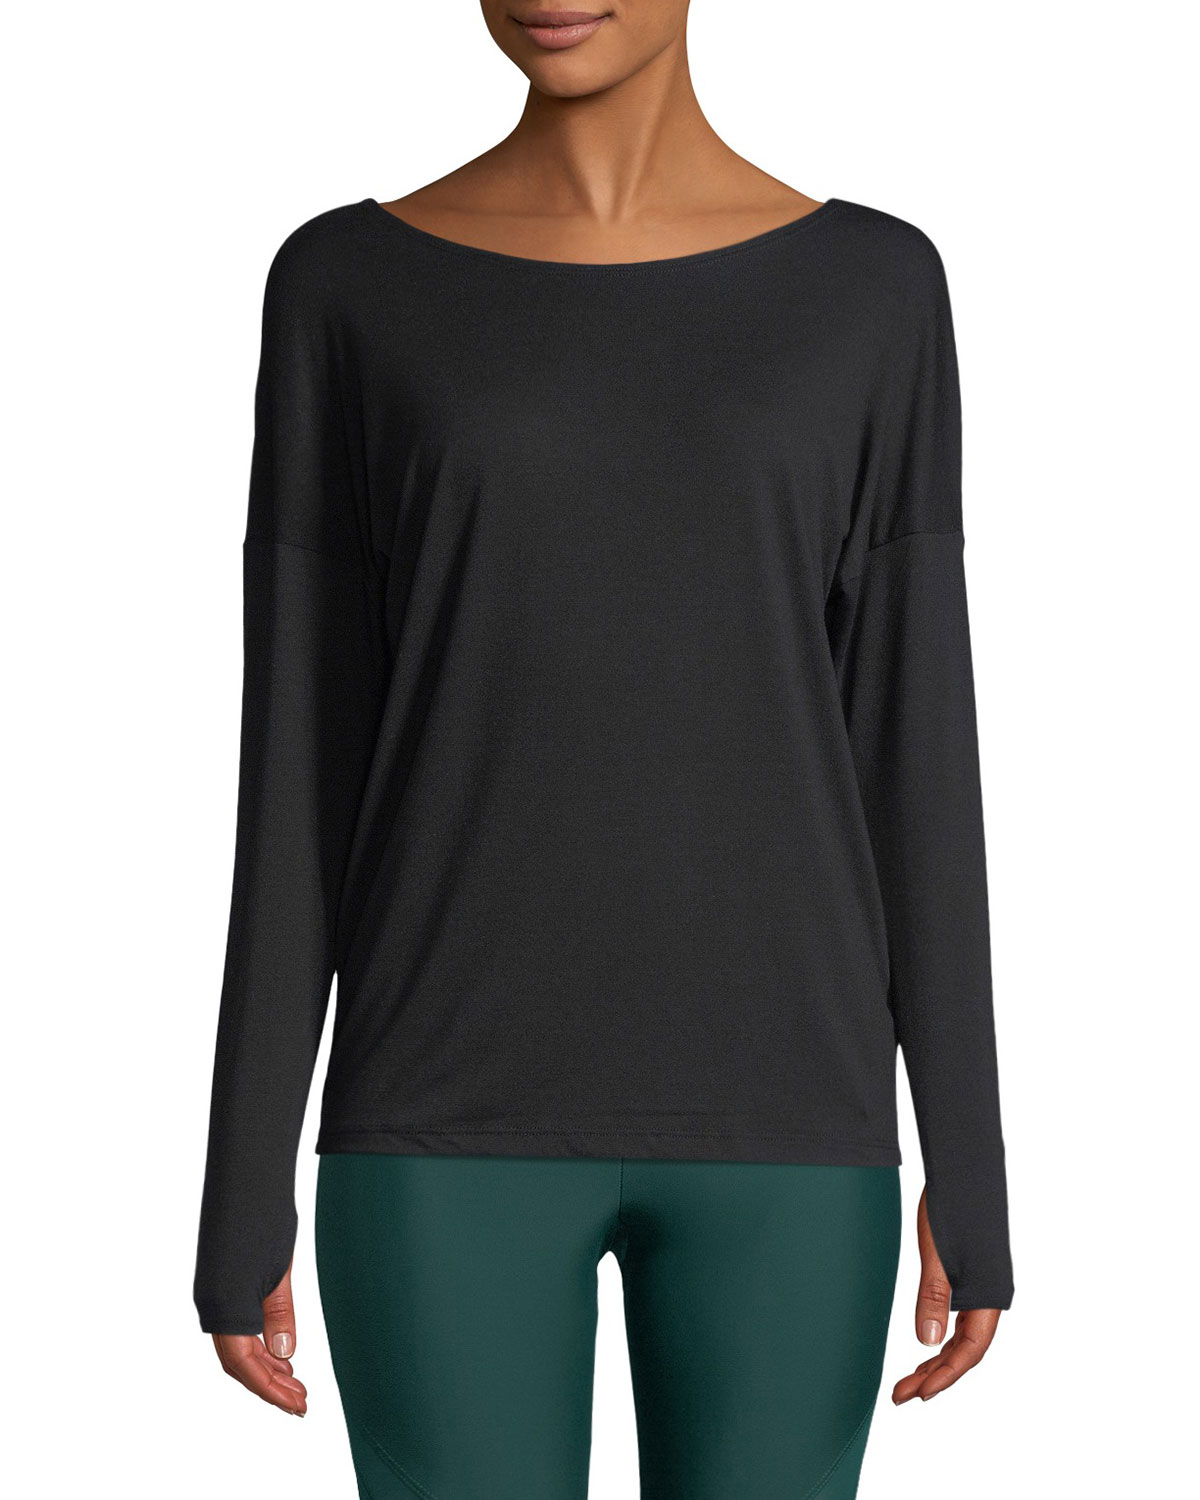 Diamond Back Long-Sleeve Active Top